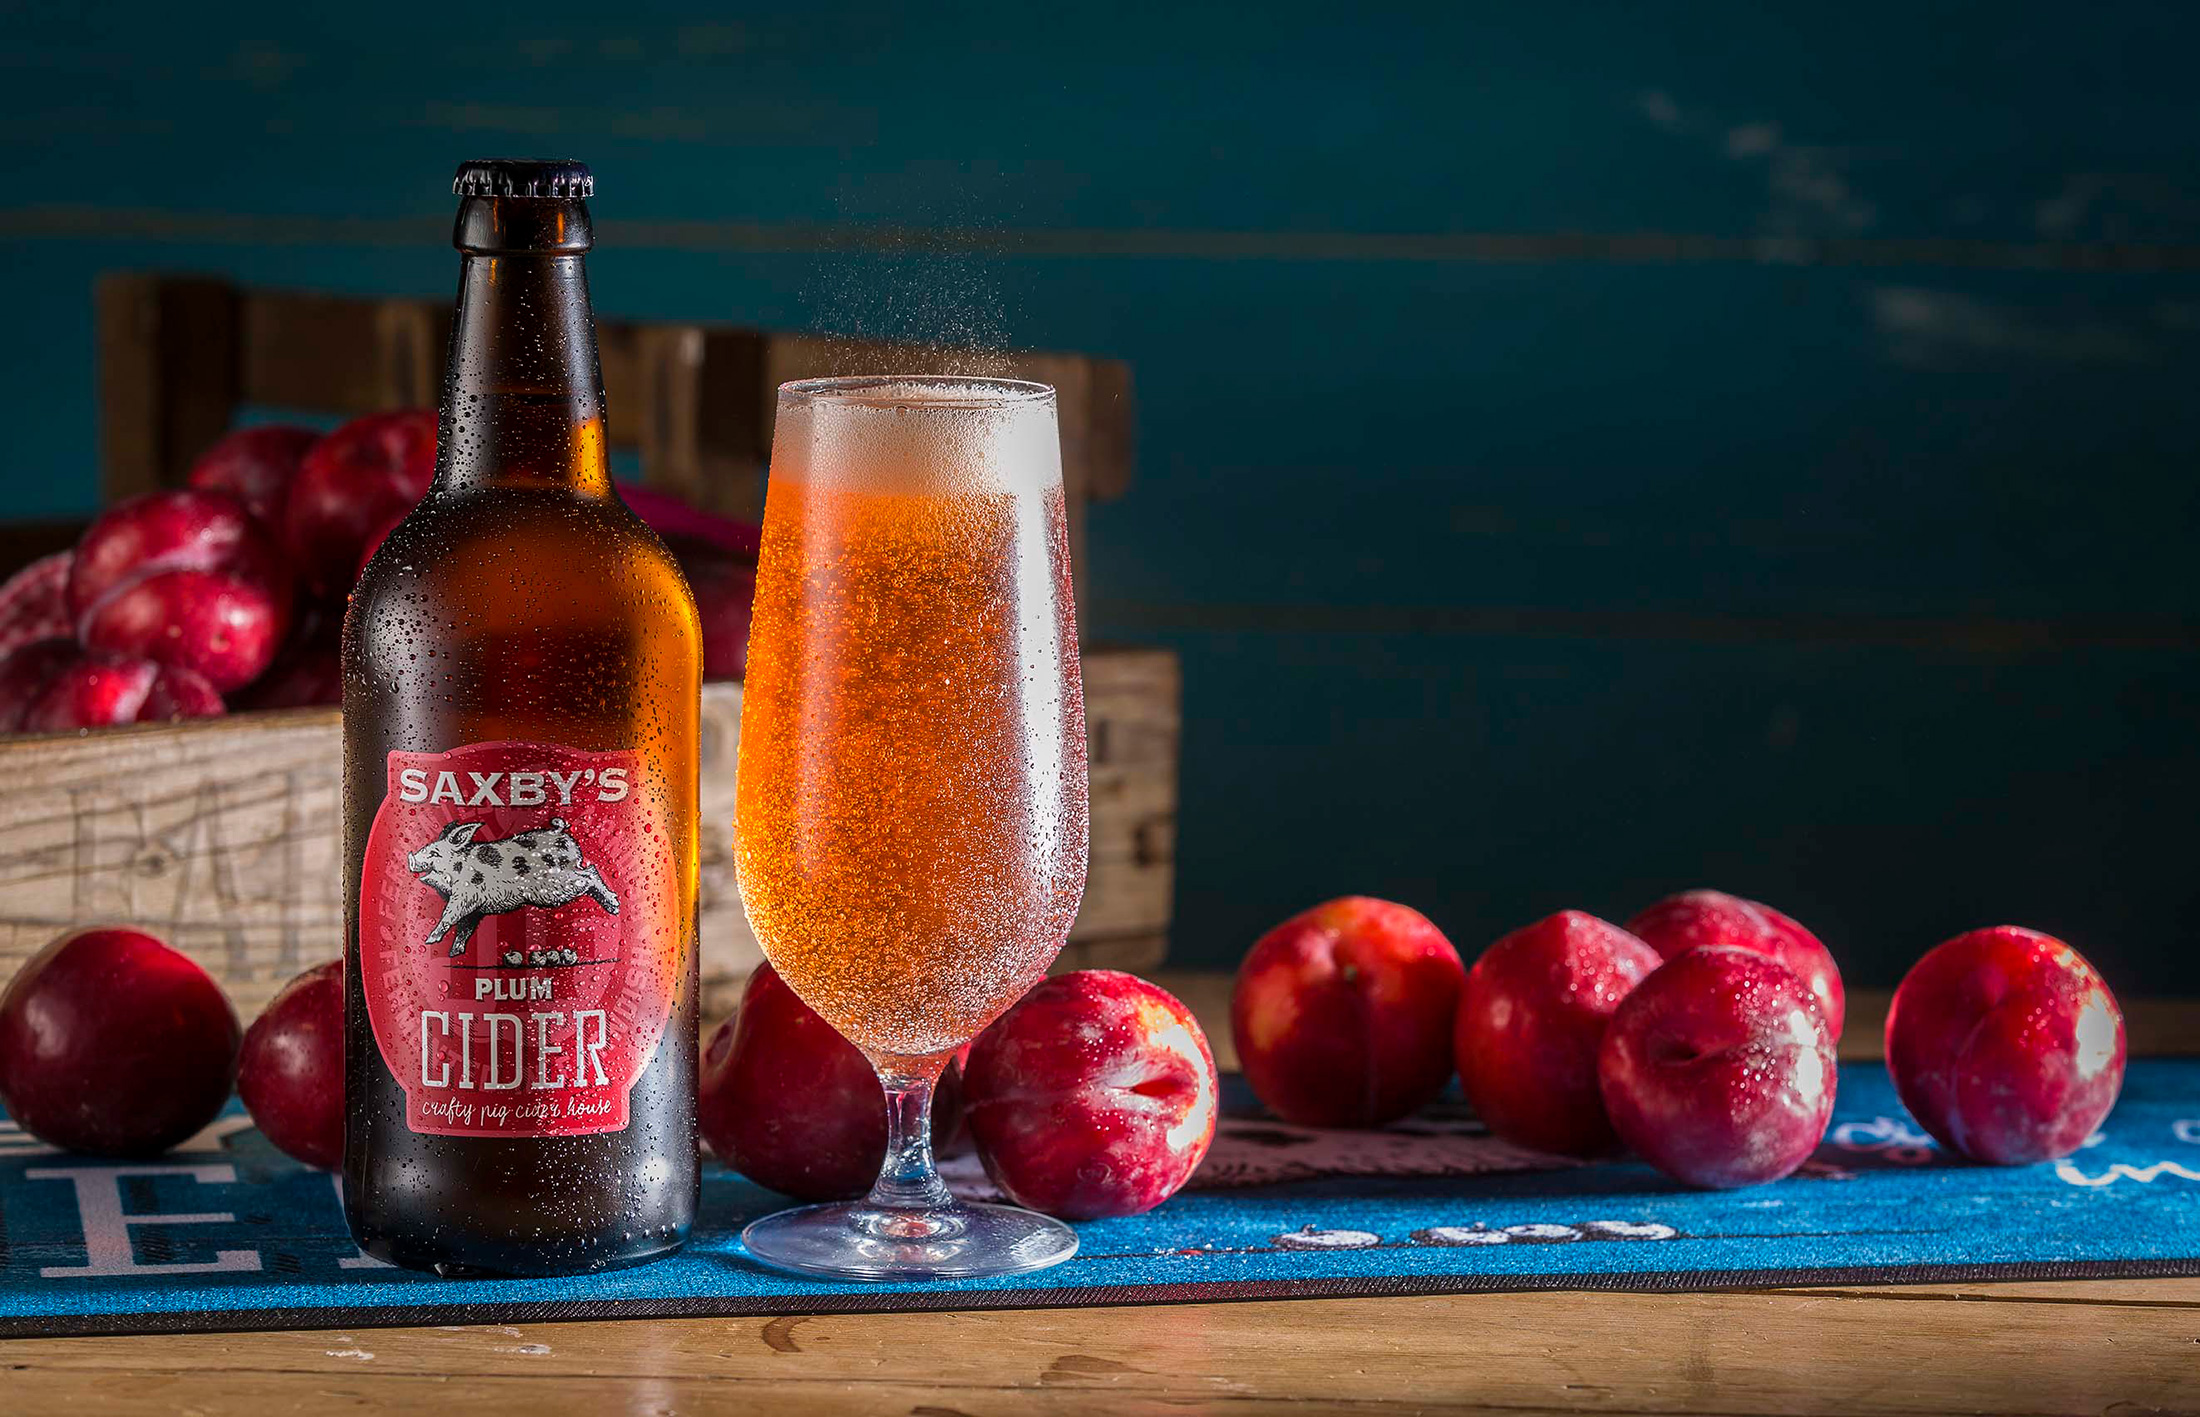 """""""A wonderful garnet colour. This has sweet apple and caramel notes on the nose, and the apples come through on the nose with a well-judged hint of plummy stone fruit on the finish. This tastes honest and clean and bright. A well made CIDER."""" - 2019 Great Taste Judge's comments about Saxby's Plum Cider"""